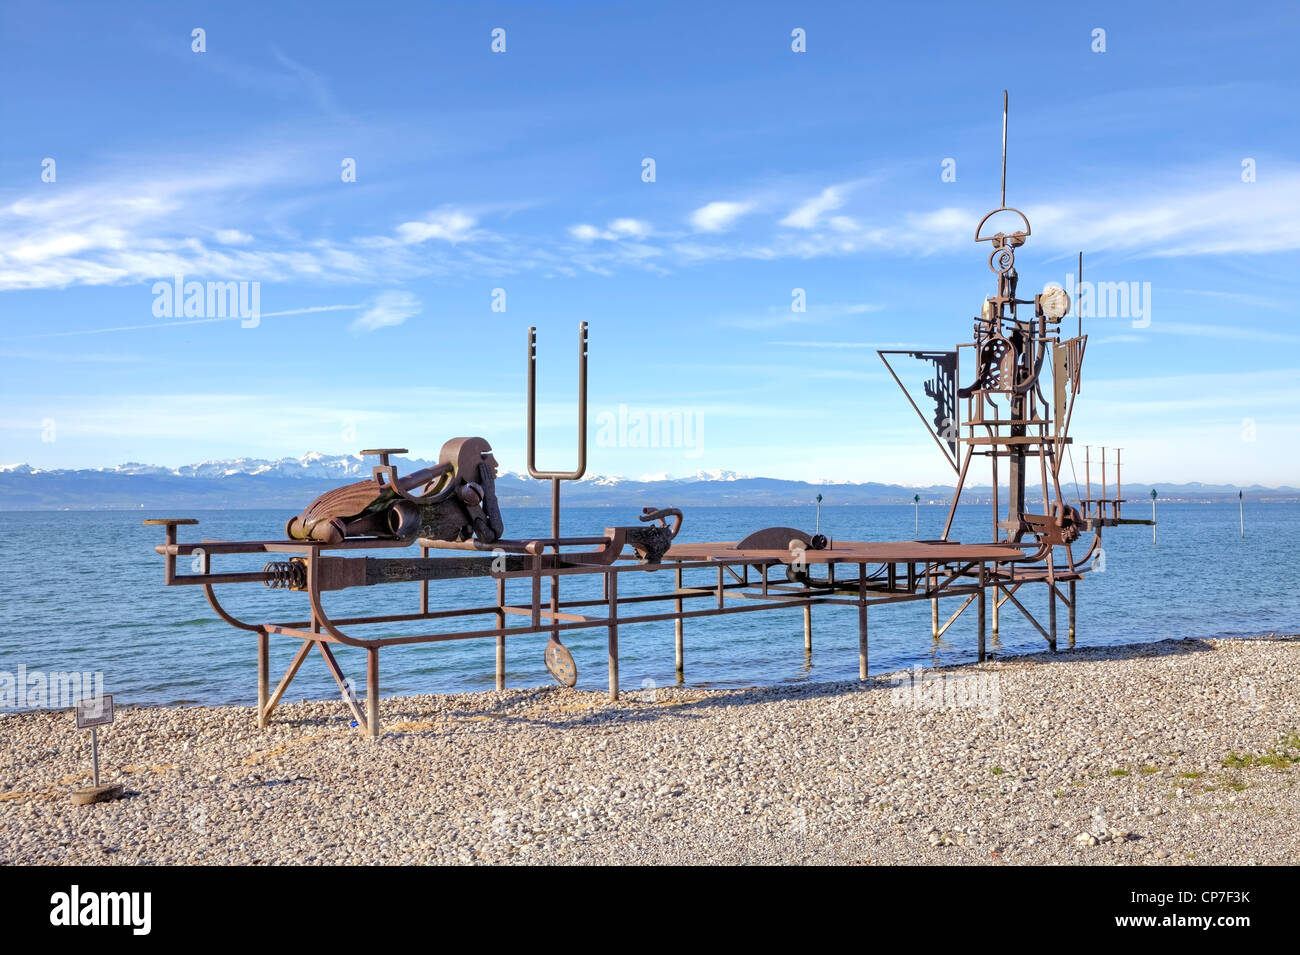 Sound ship, at the moment, Friedrichshafen, Lake Constance, Baden-Wurttemberg, Lake Constance, Germany - Stock Image